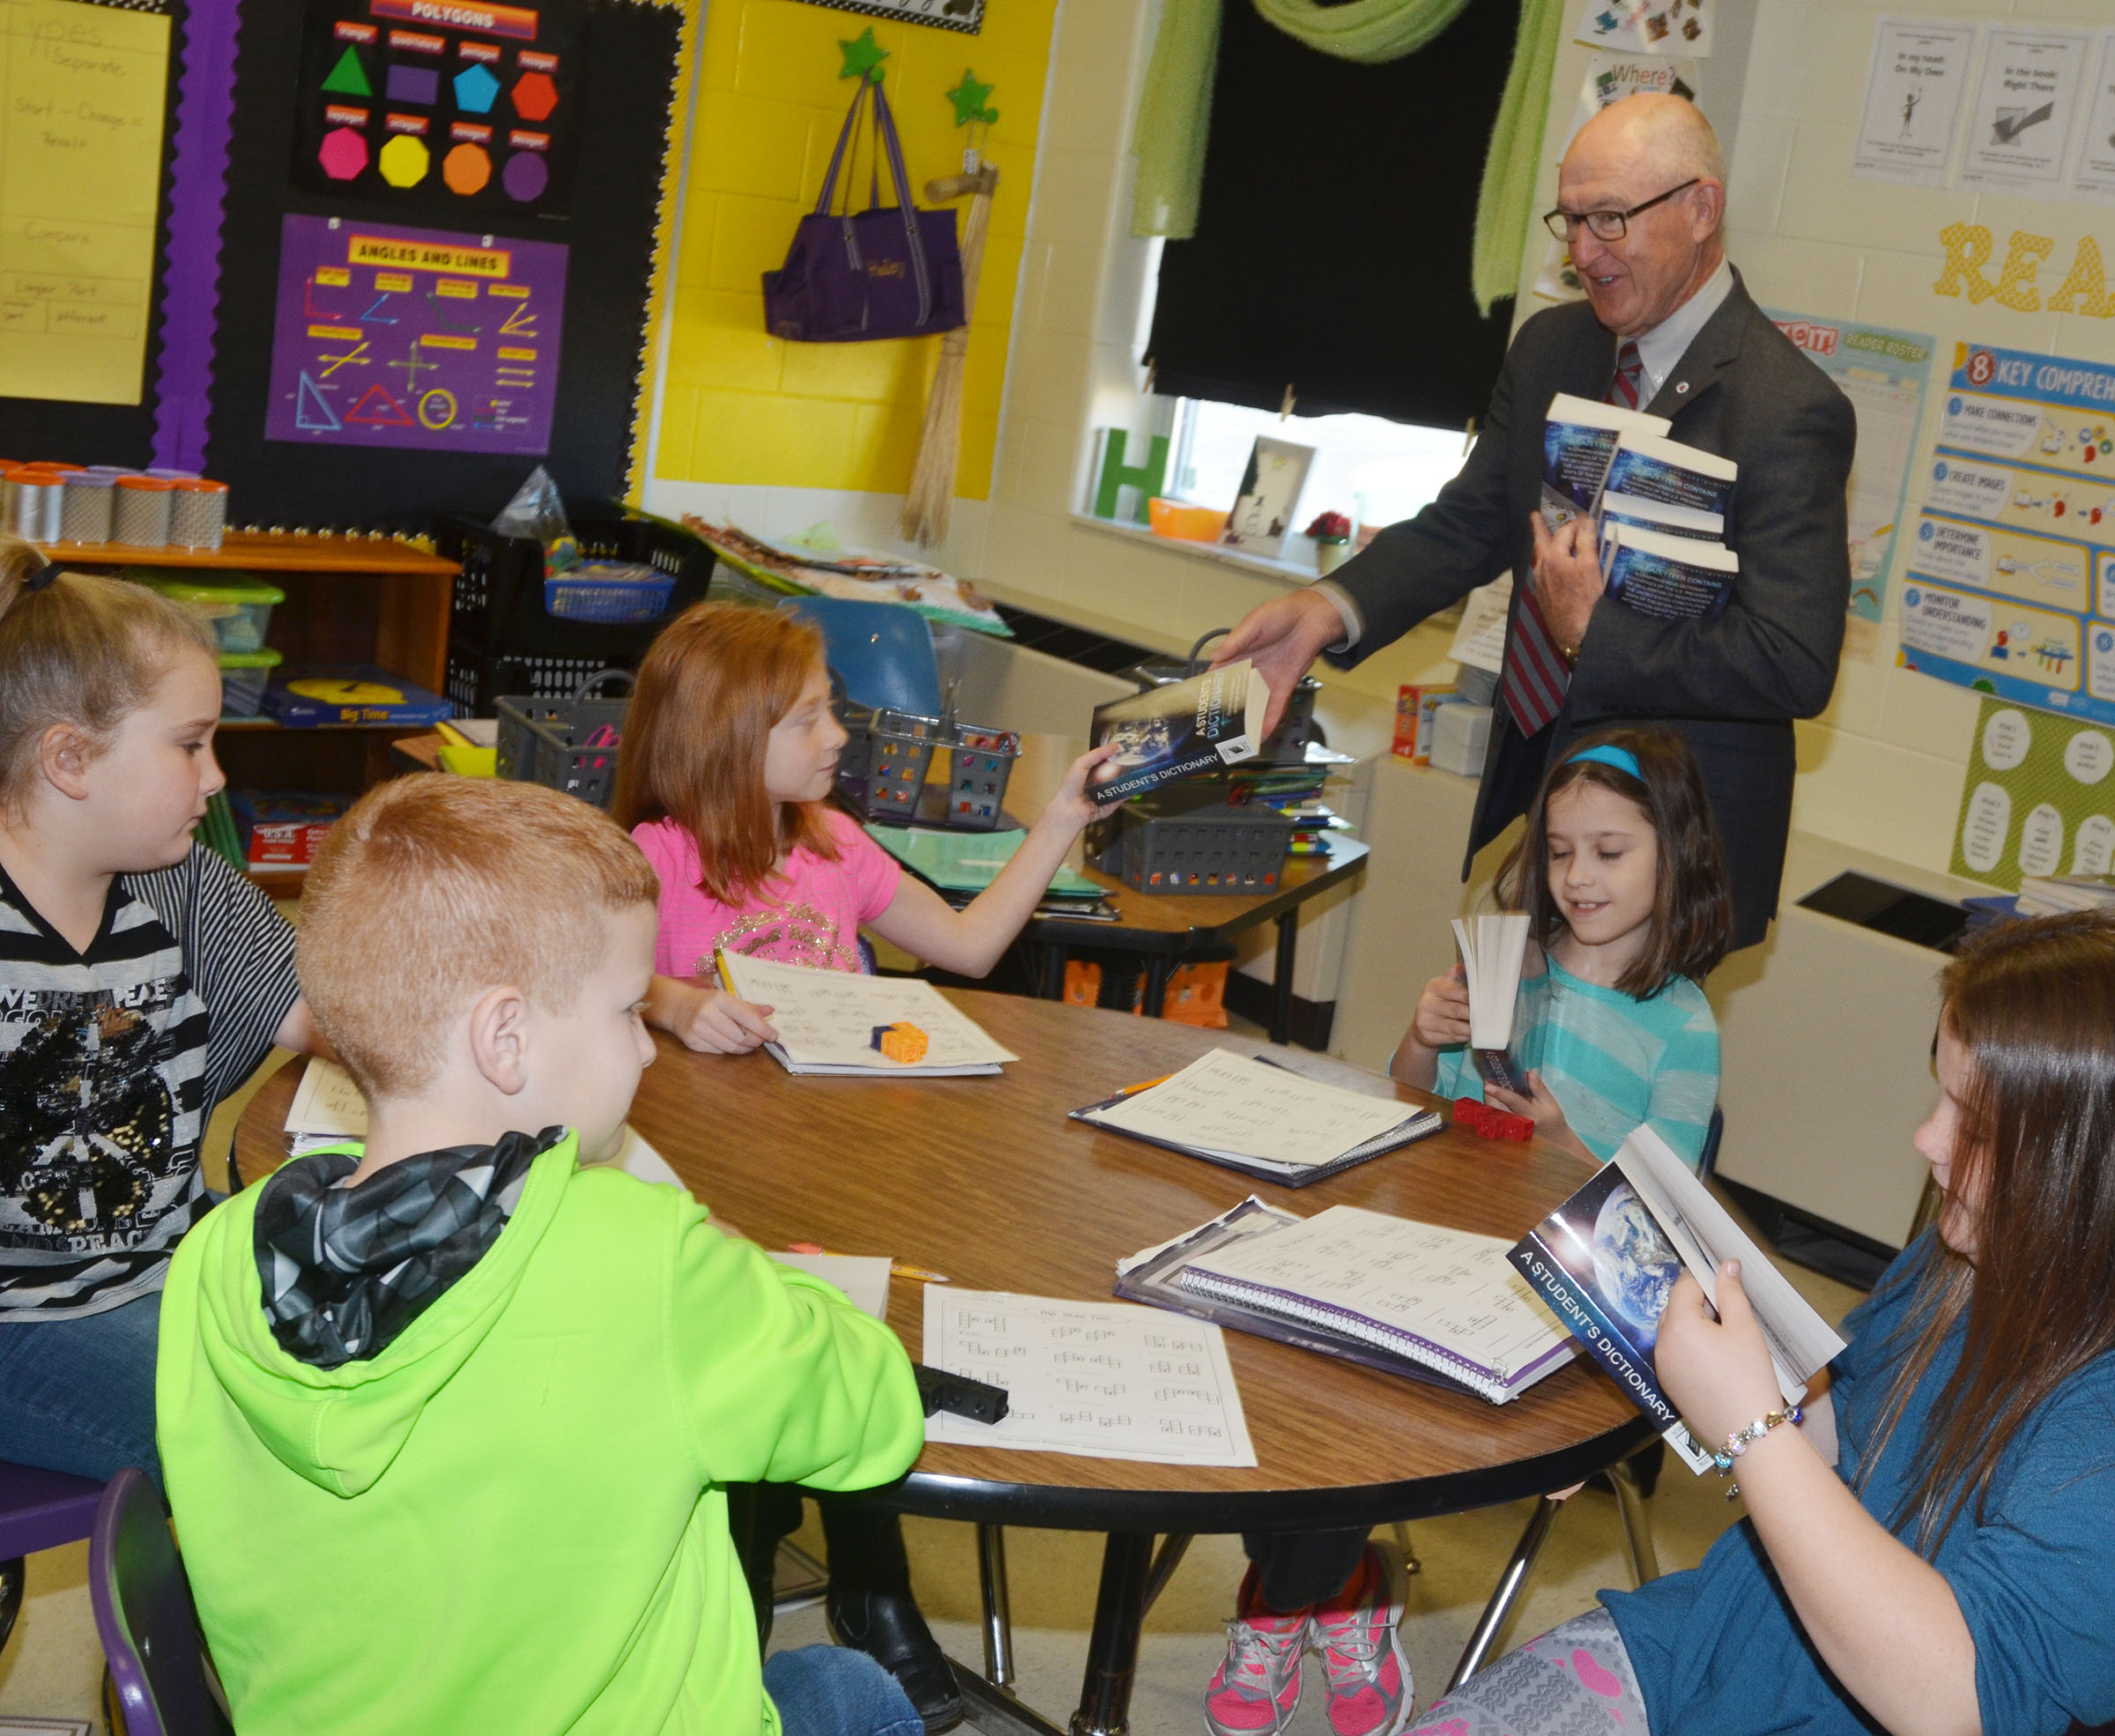 Campbellsville Rotary Club member Chuck Vaughn passes out dictionaries to CES third-grade students.